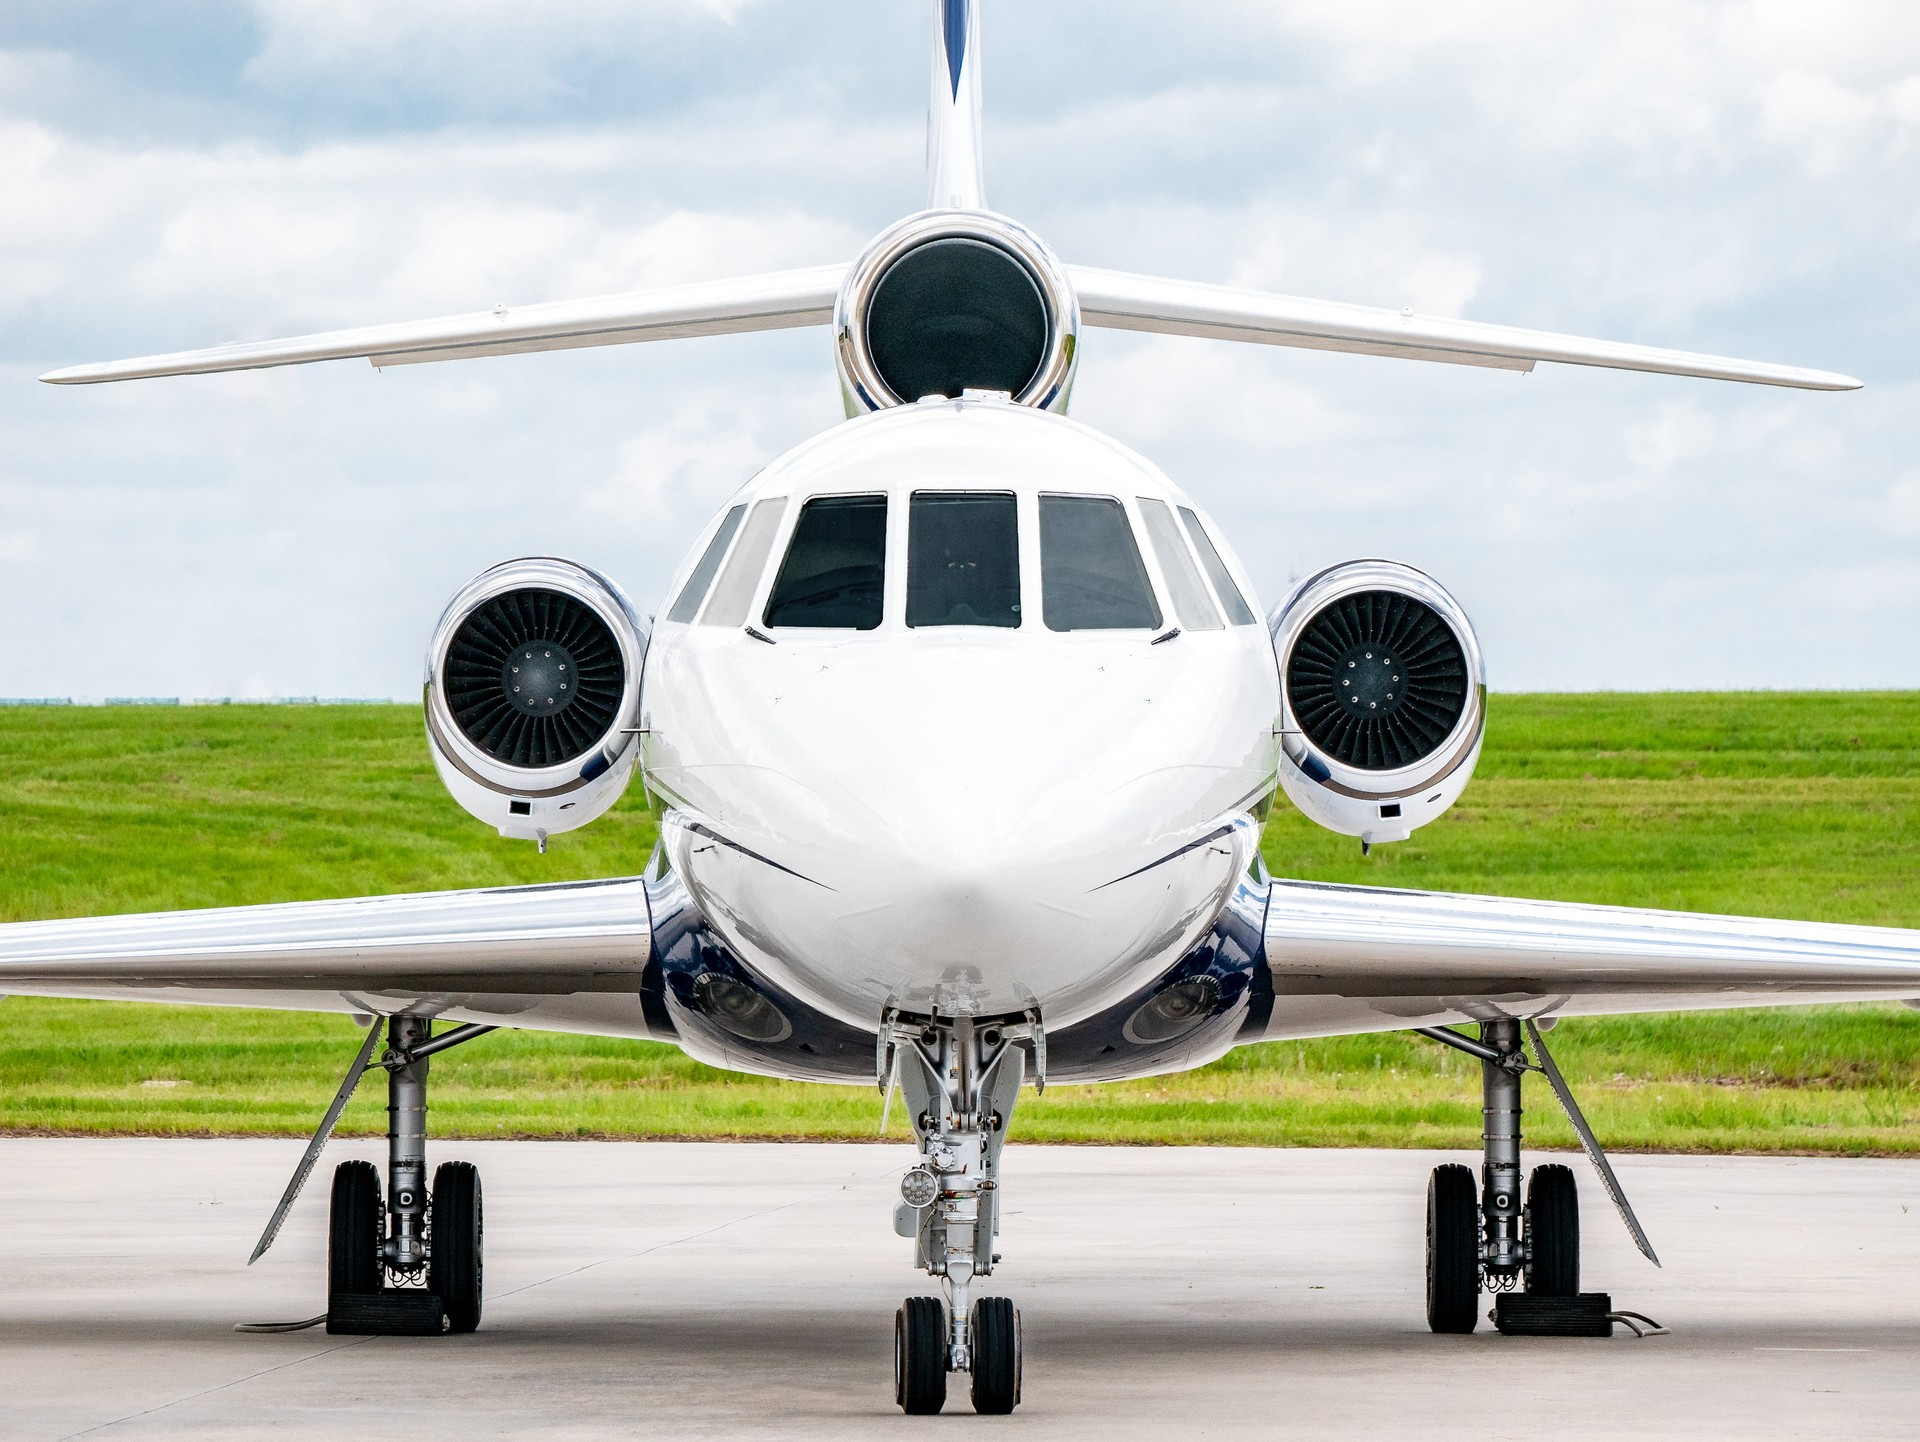 Allen Park Private Jet and Air Charter Flights